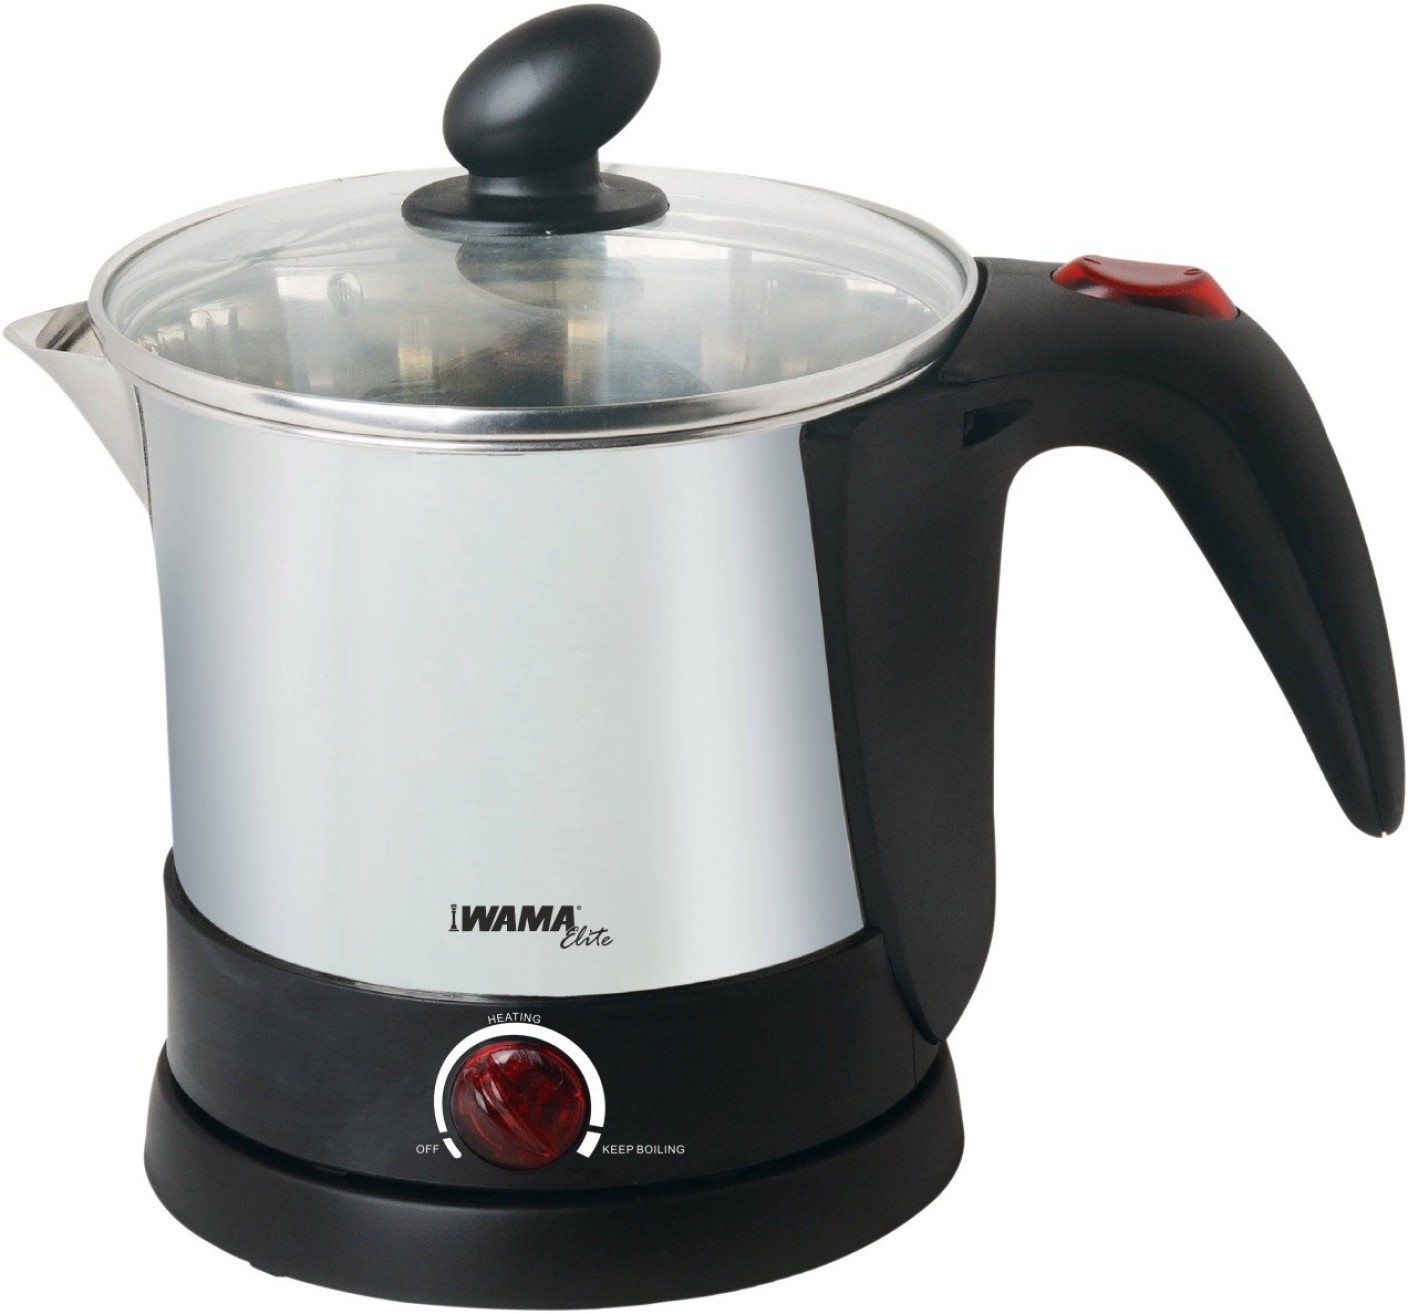 wama wama band in wama wmek electric kettle price in buy wama wmek  wama wmek electric kettle price in buy wama wmek add to cart